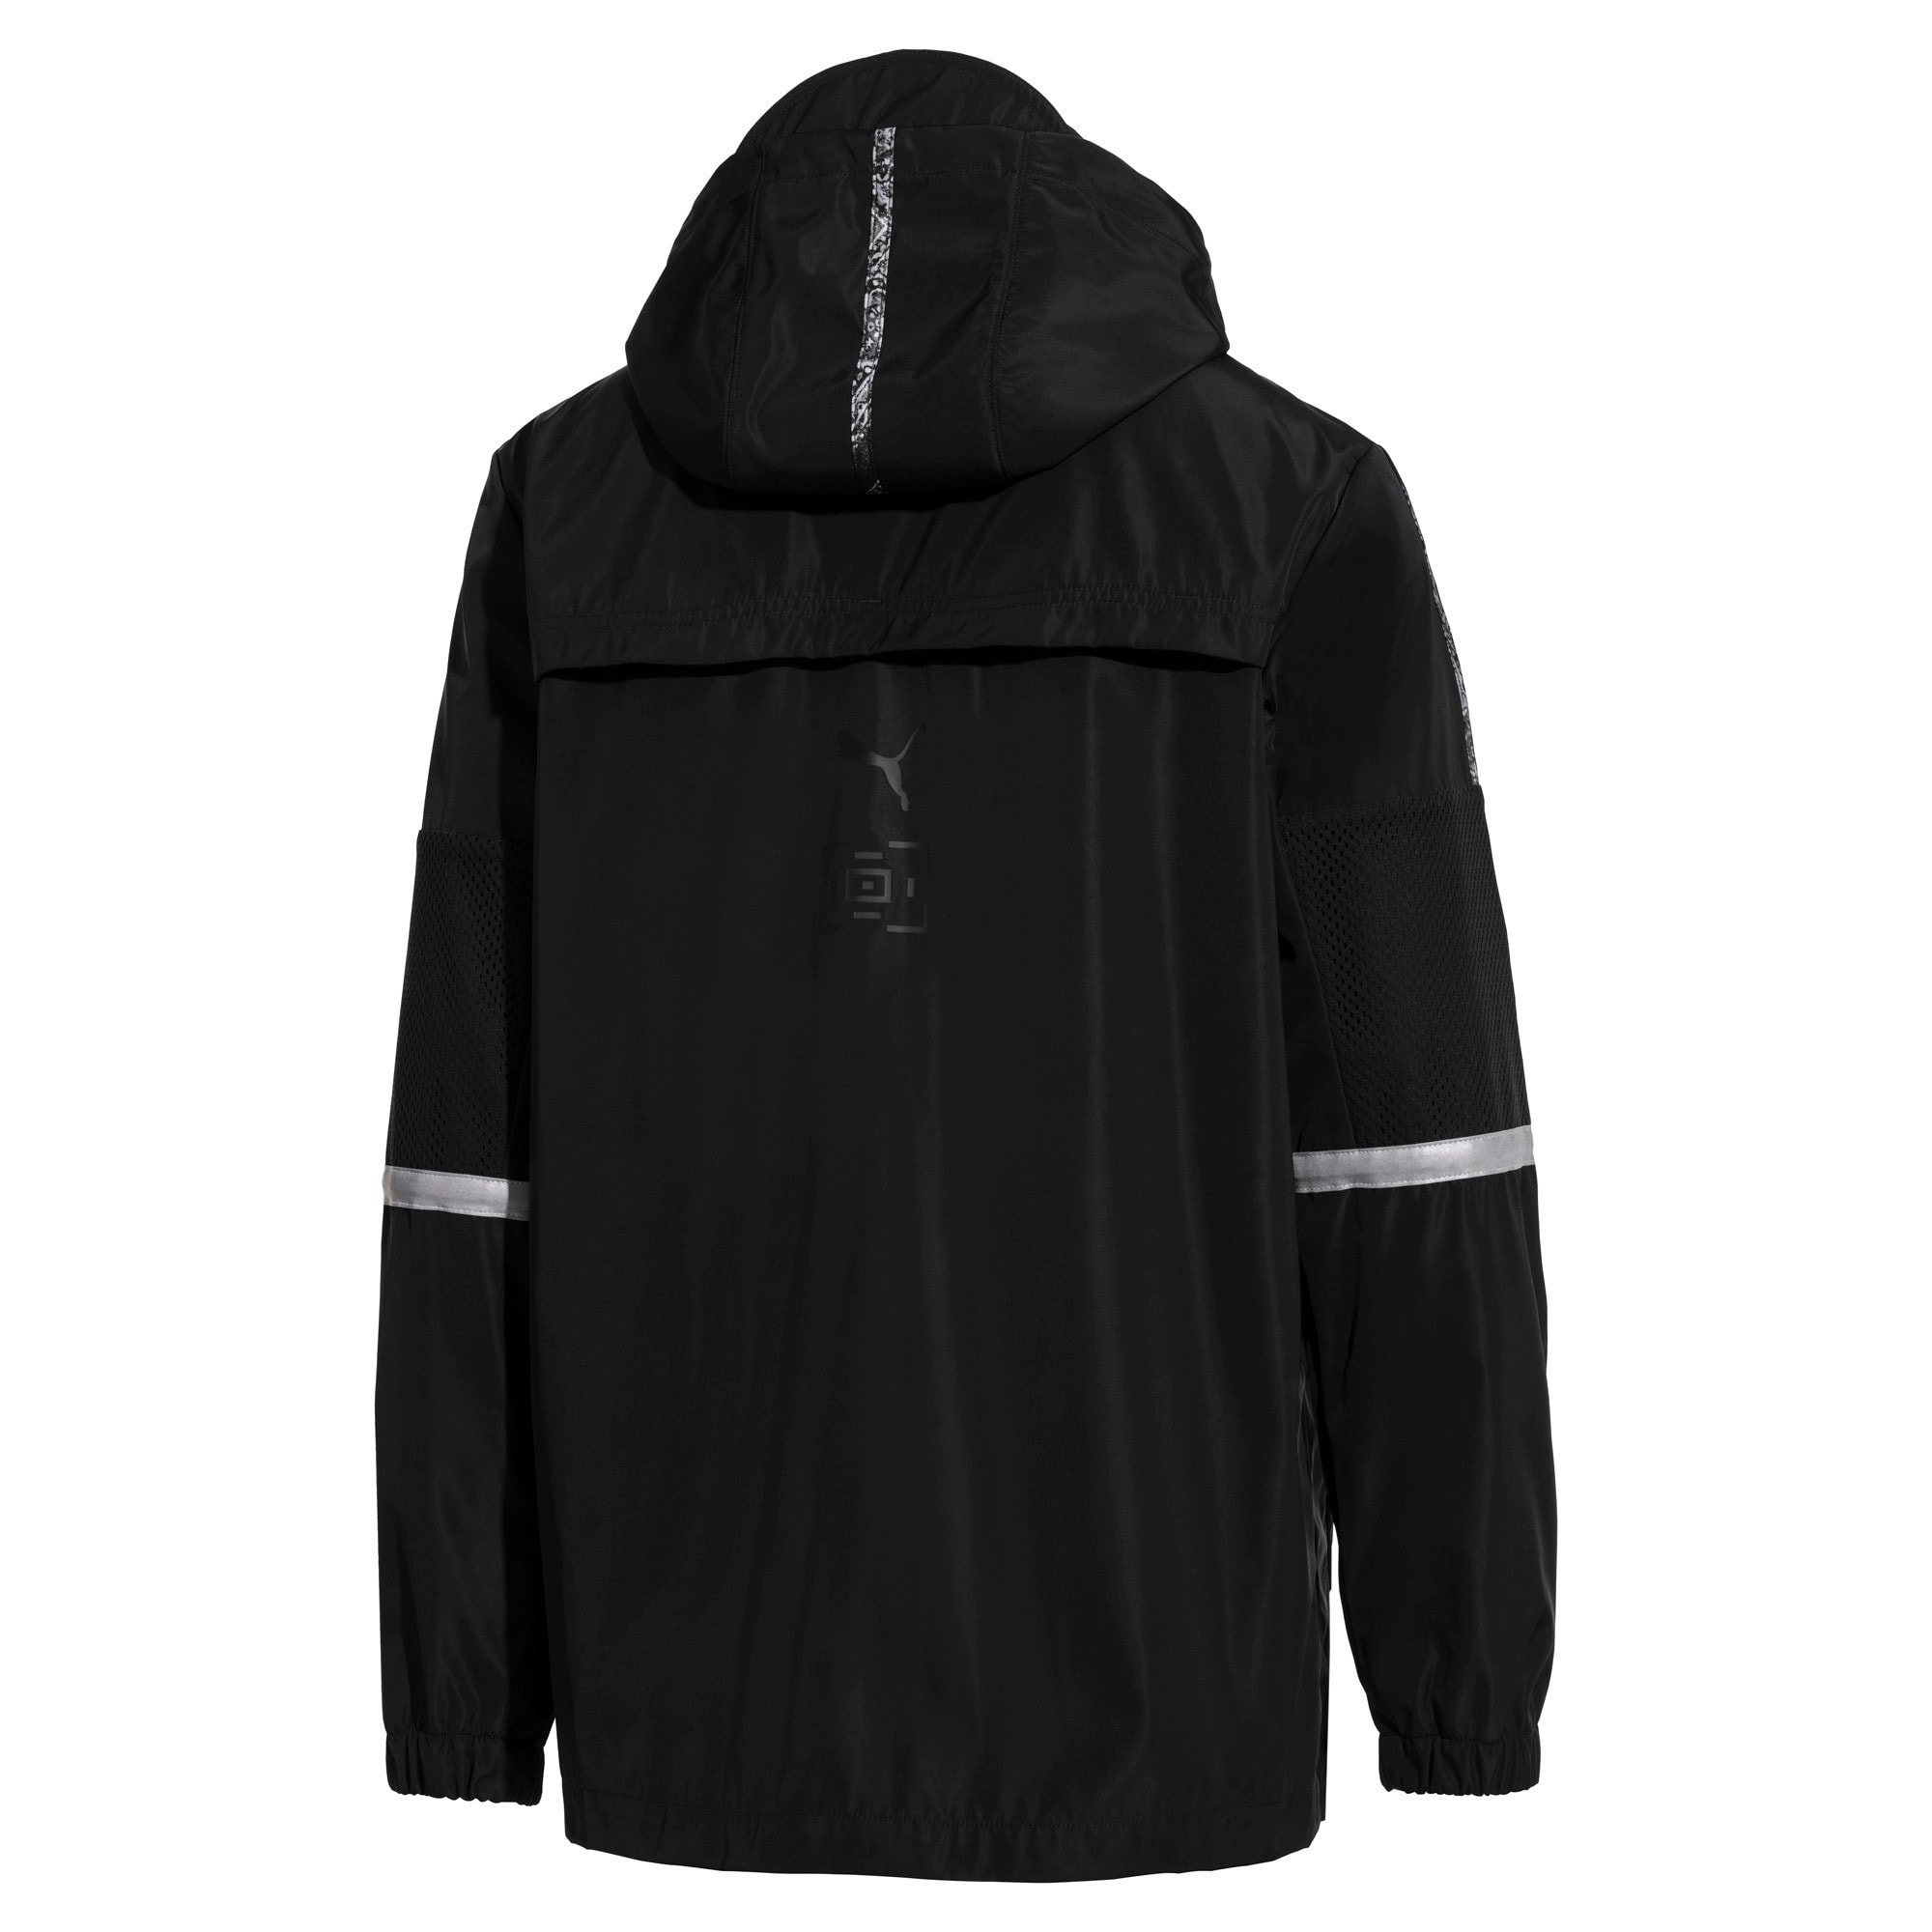 Thumbnail 4 of PUMA x LES BENJAMINS Men's Windbreaker, Puma Black, medium